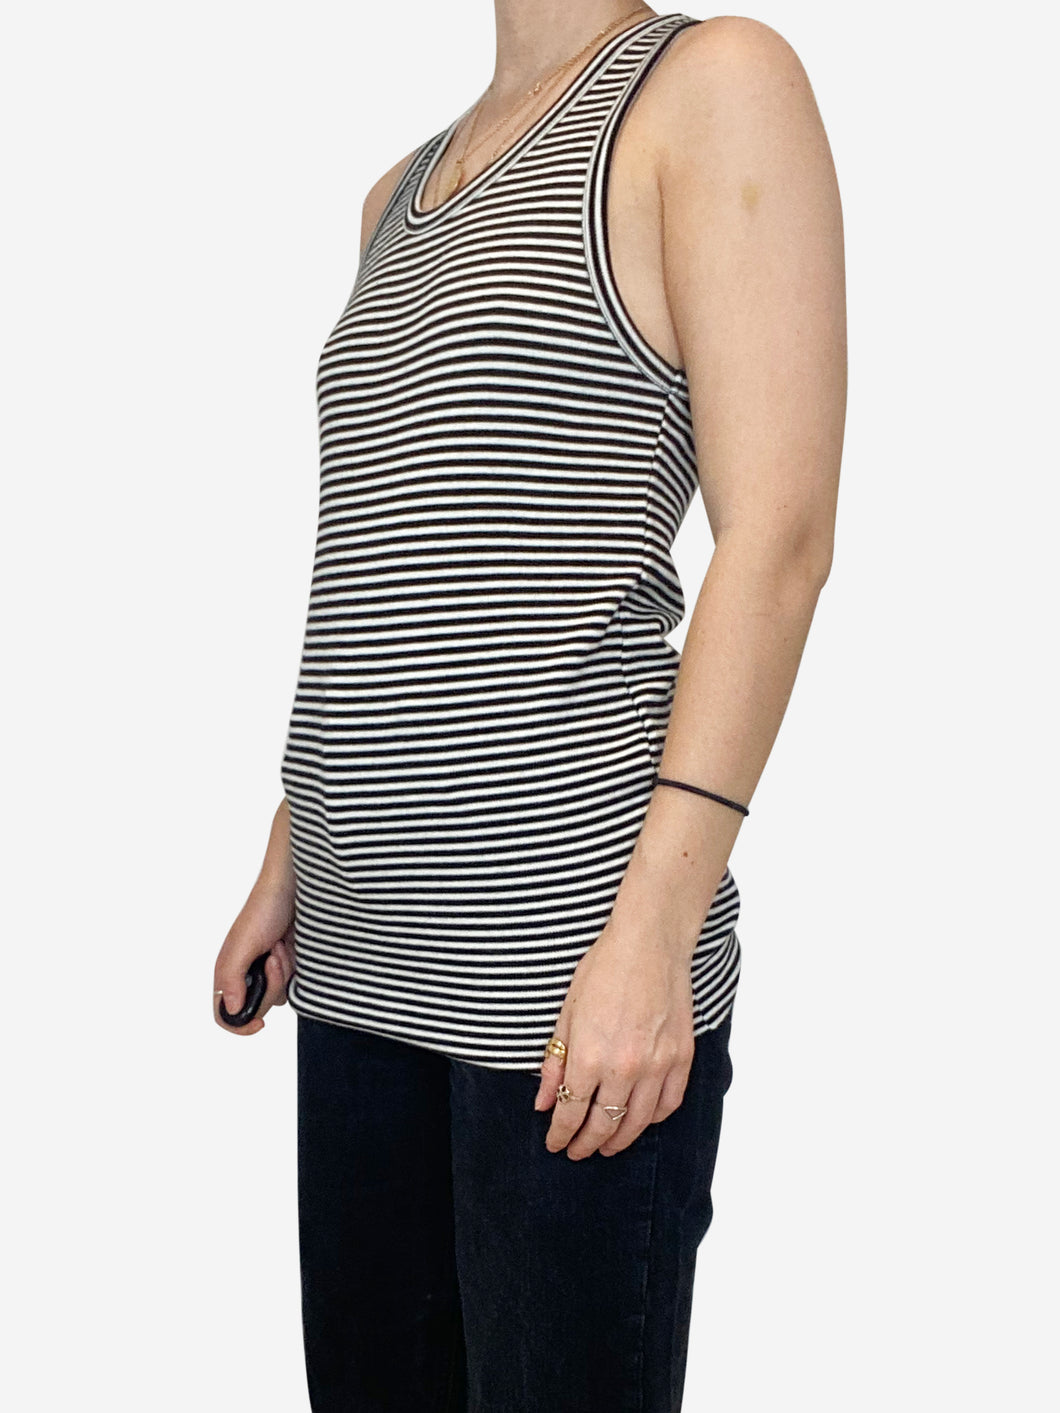 Black & White Haider Ackermann Vest, XS